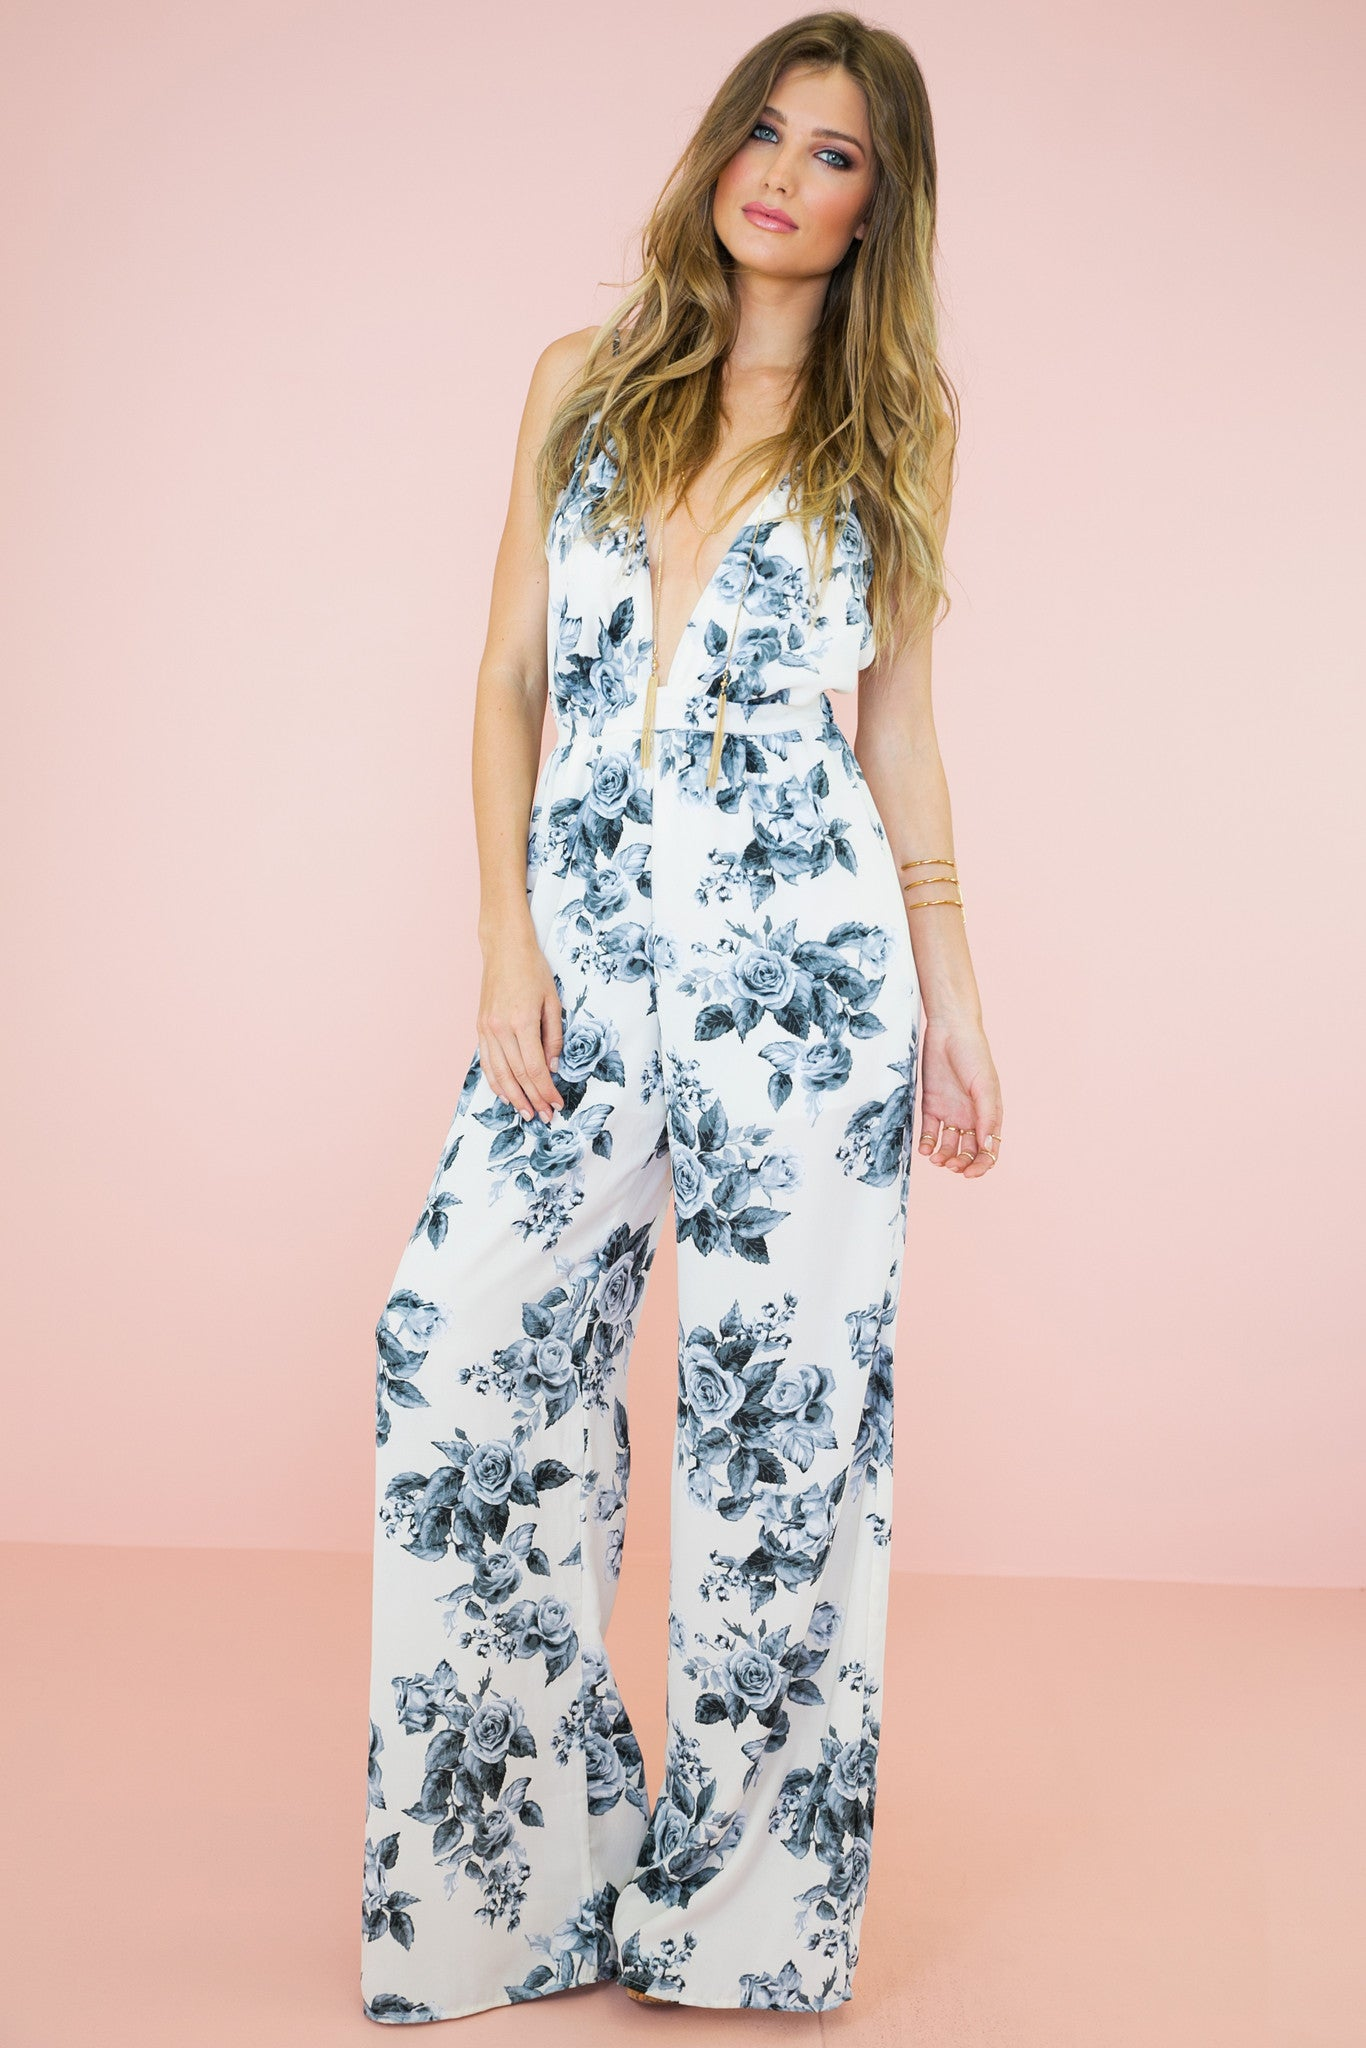 Rose Garden PLunging Jumpsuit /// Only 1-S Left ///